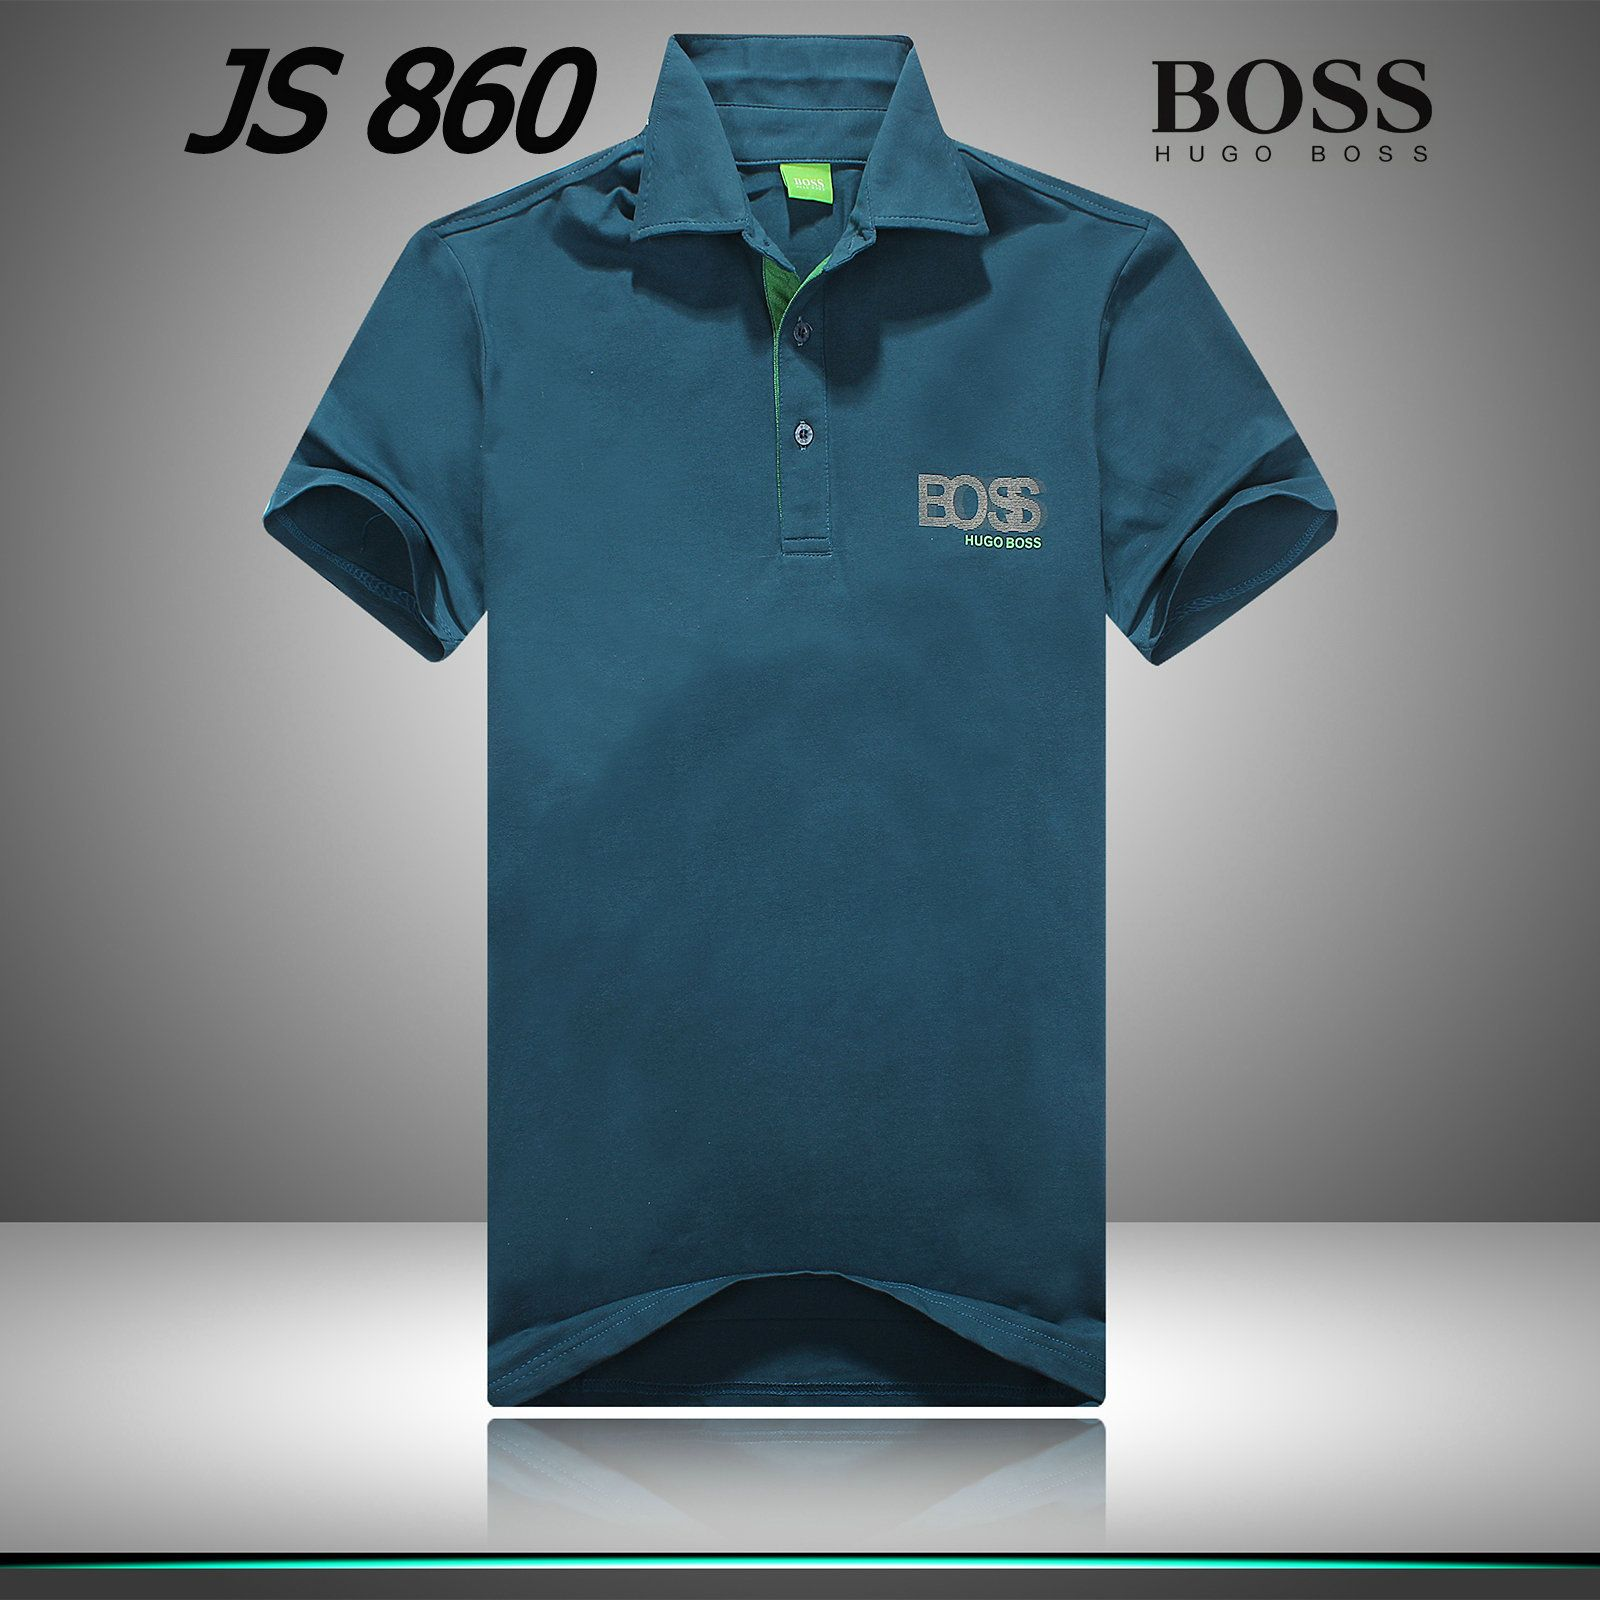 ralph lauren outlet store online Hugo Boss Men's Polo Shirt Fashion Blue  http://